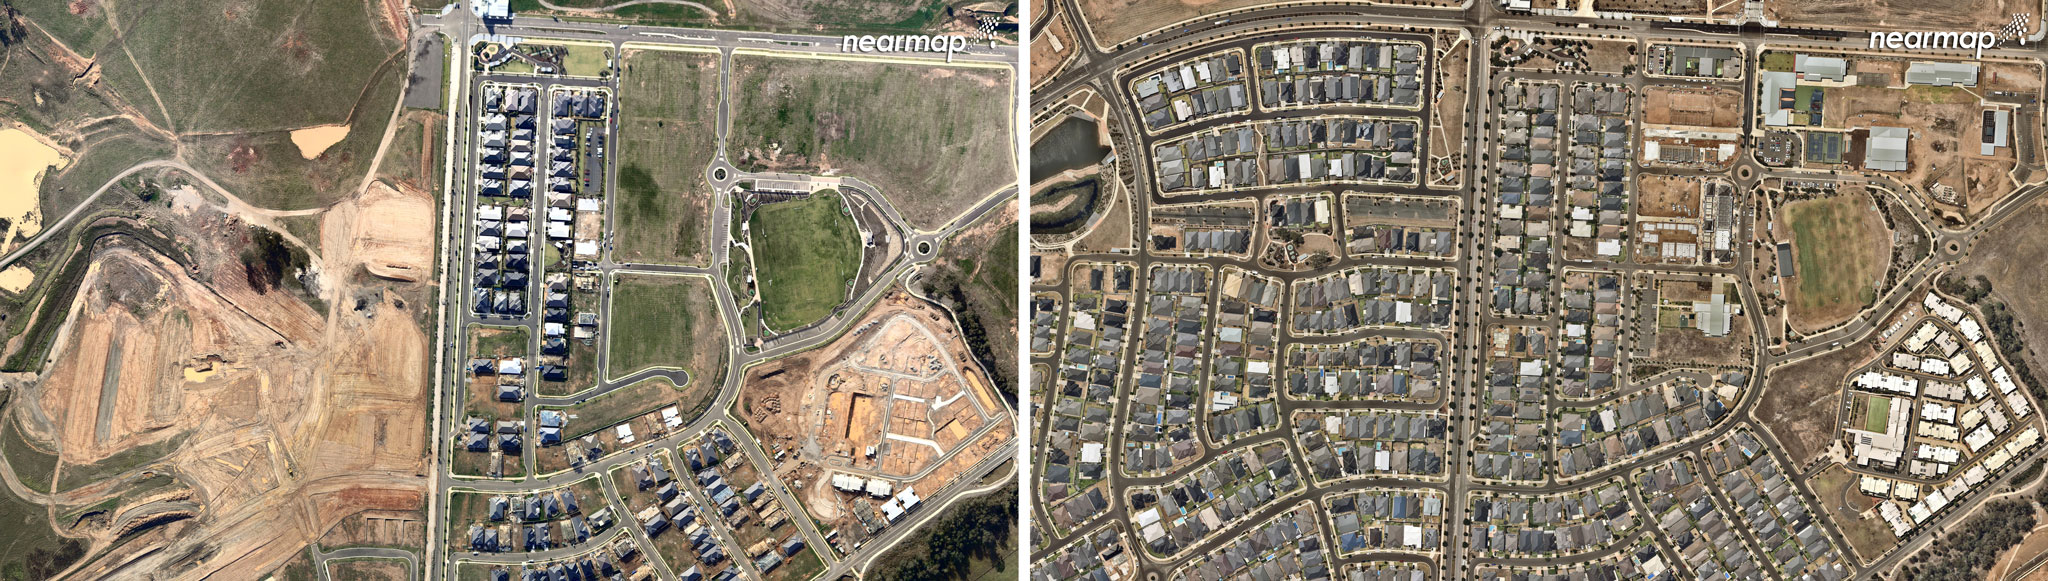 Oran Park, June 2011(left), Oran Park, January 2018 (right).